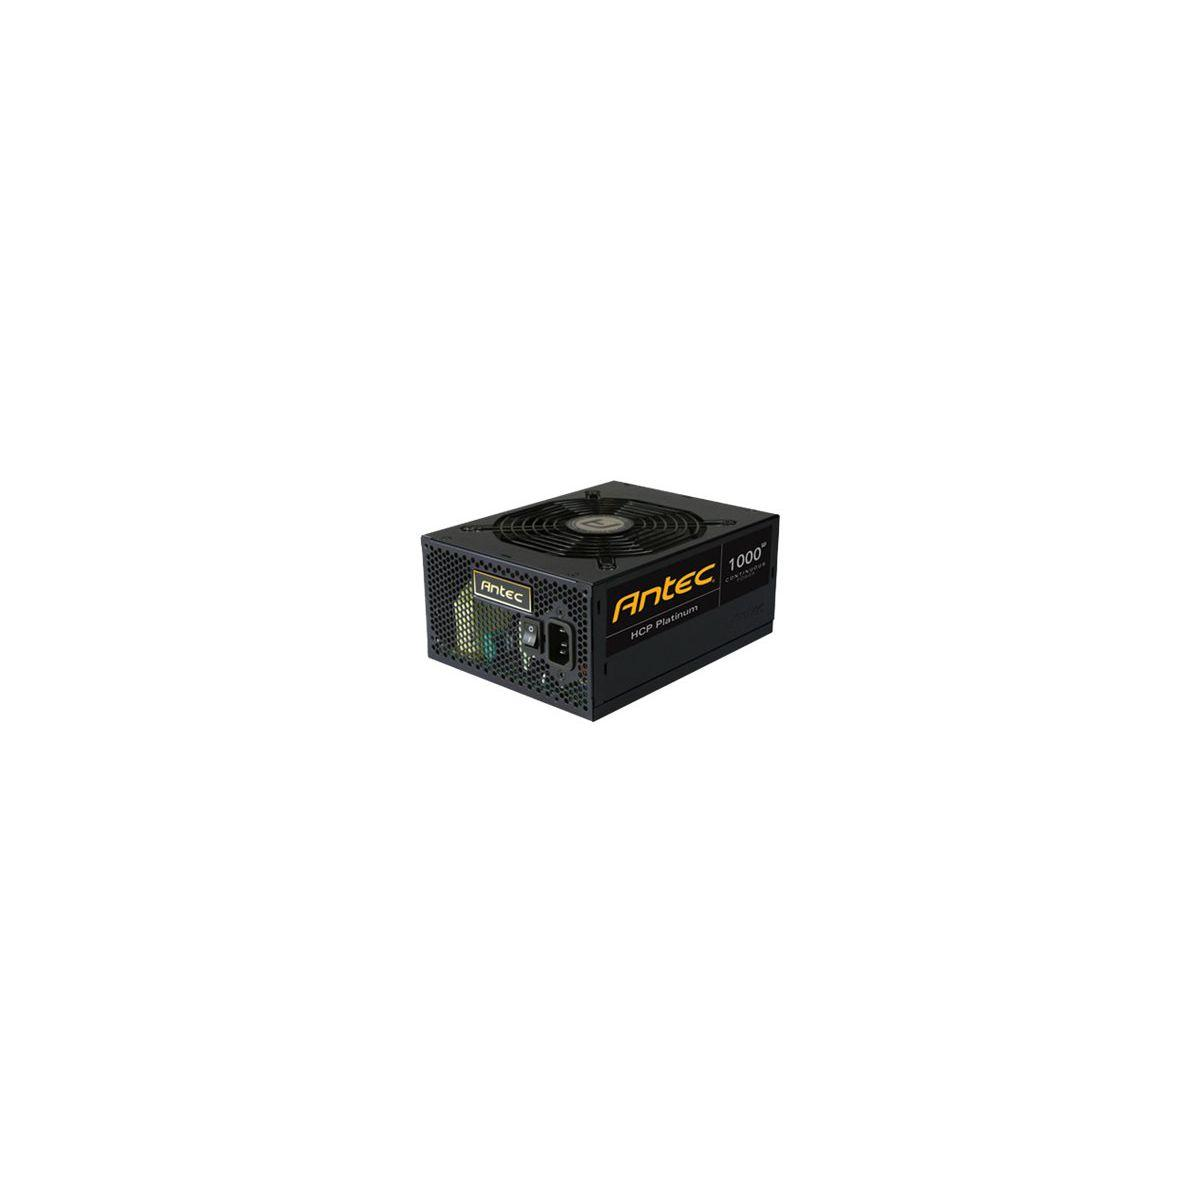 Alimentation pc antec hight current pro hcp 1000w - livraison offerte : code relay